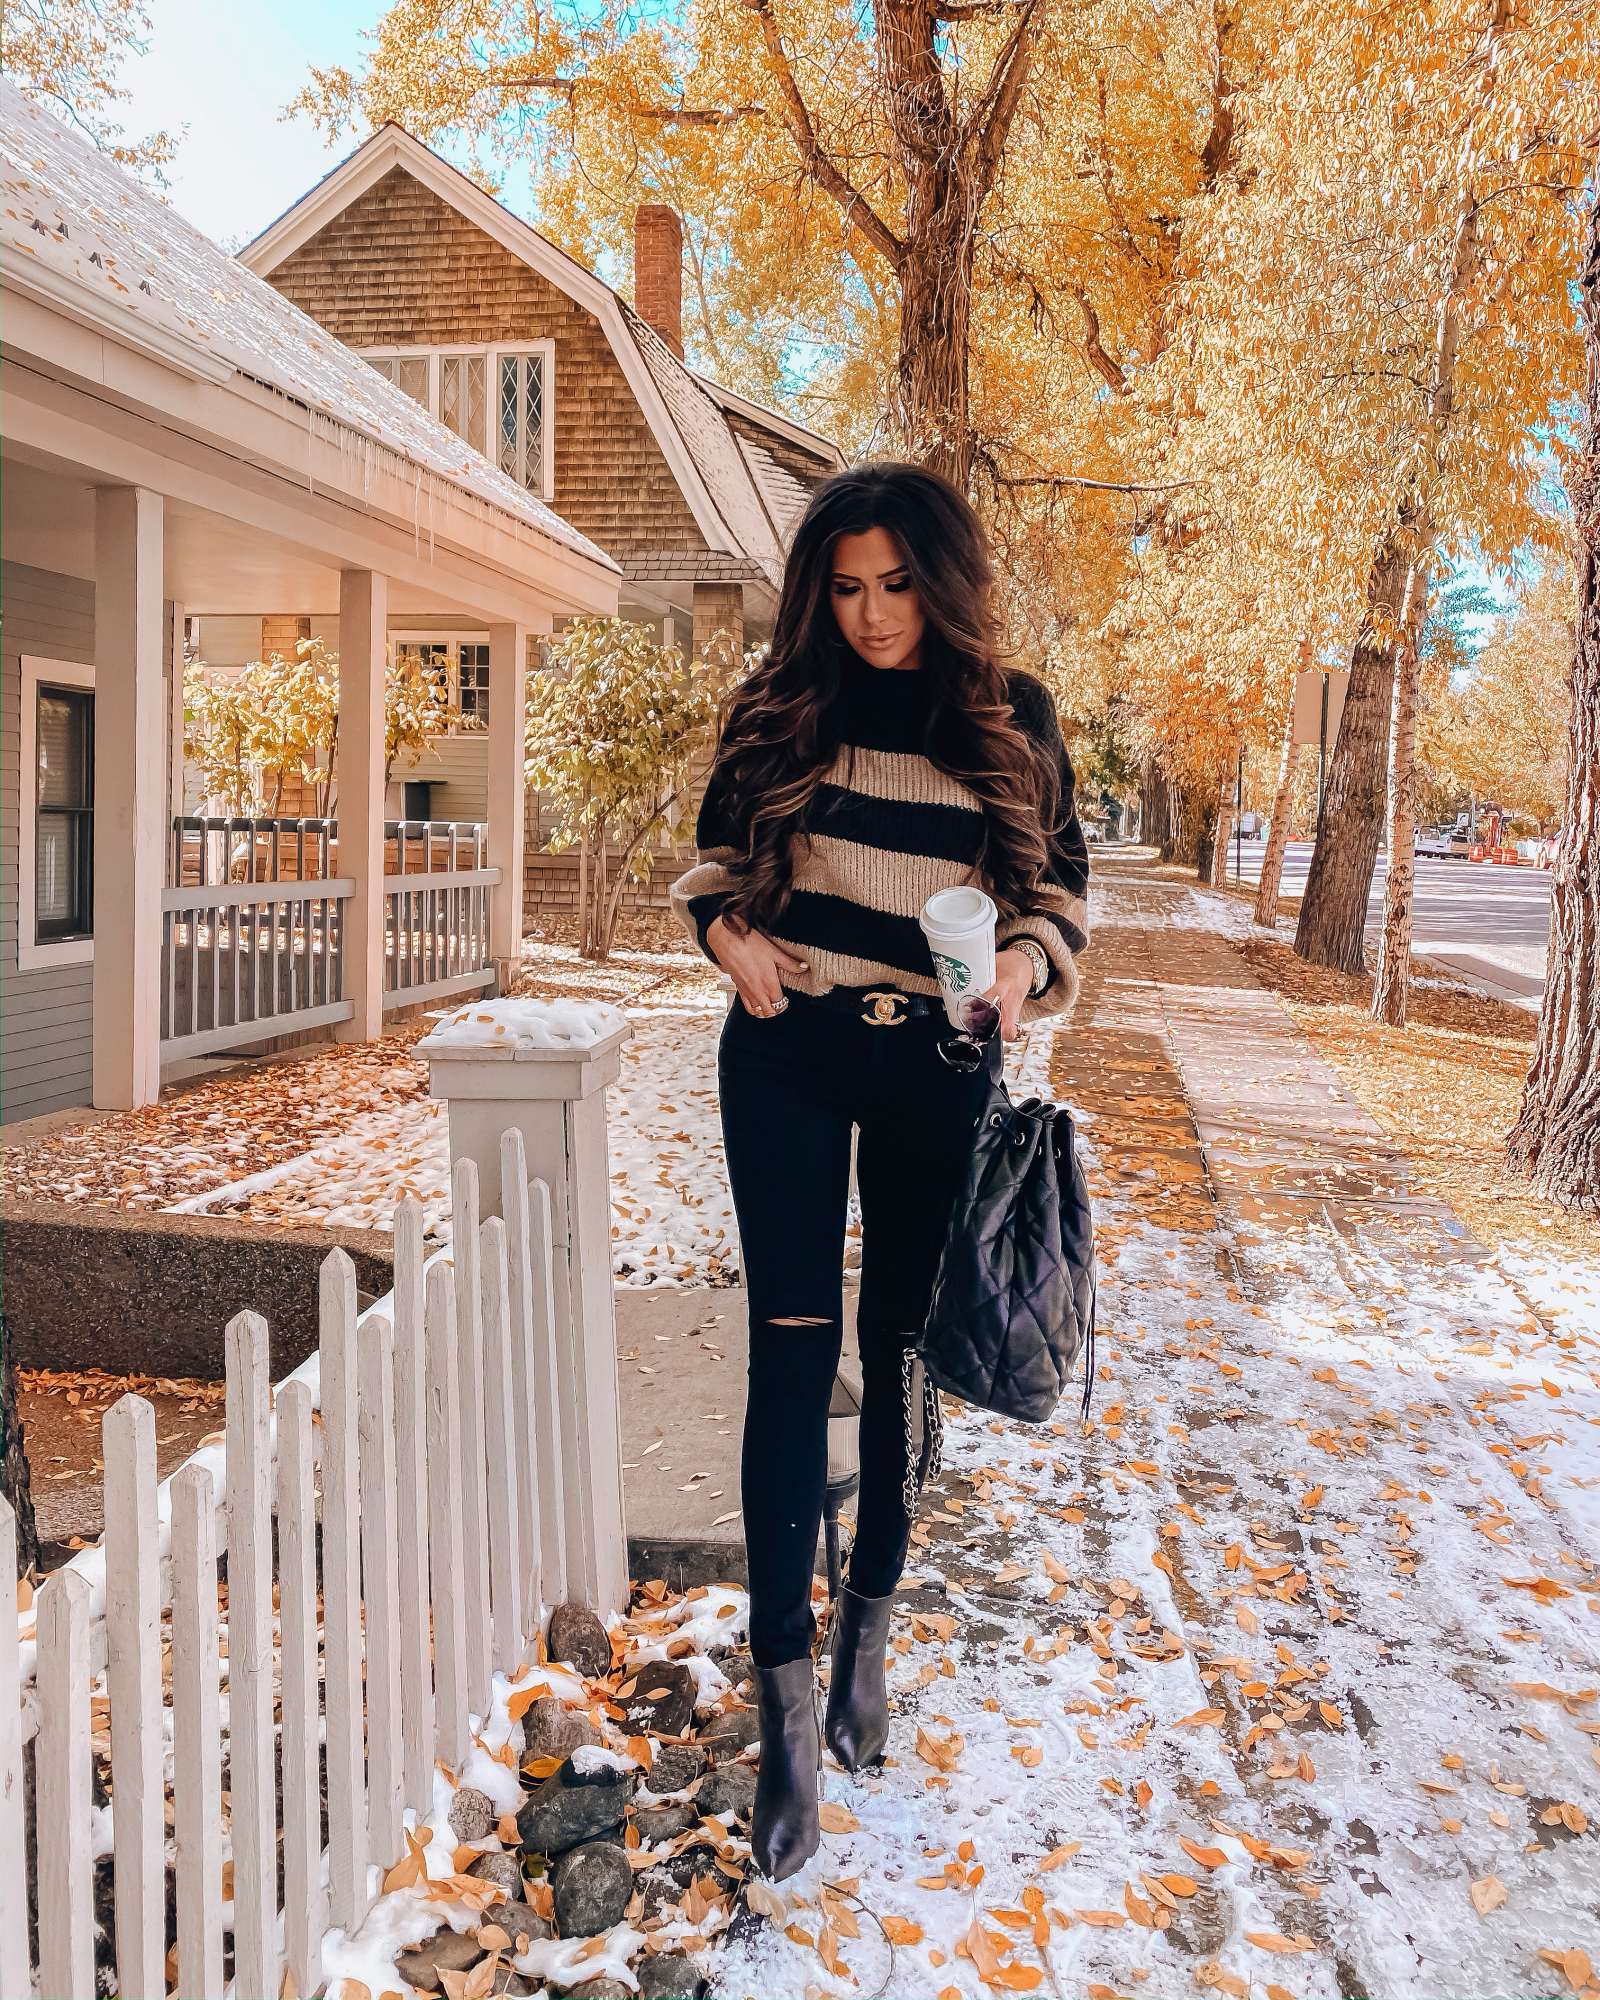 fall fashion pinterest 2019, emily gemma, aspen fall 2019 | A YEAR IN REVIEW : MASSIVE 2019 INSTAGRAM RECAP by popular Oklahoma life and style blog, The Sweetest Thing: image of a woman walking outside and wearing a Nordstrom Linetta Balloon Sleeve Sweater ONLY, Nordstrom Madewell jeans, Nordstrom Mella Bootie MARC FISHER LTD, Nordstrom Large Chunky Hoop Earrings ARGENTO VIVO, Nordstrom High Key Mini 59mm Rimless Aviator Sunglasses QUAY AUSTRALIA, Nordstrom Lip Cheat Lip Liner CHARLOTTE TILBURY, Nordstrom Hot Lips Lipstick CHARLOTTE TILBURY, and Nordstrom Gloss Luxe Moisturizing Lipgloss TOM FORD.